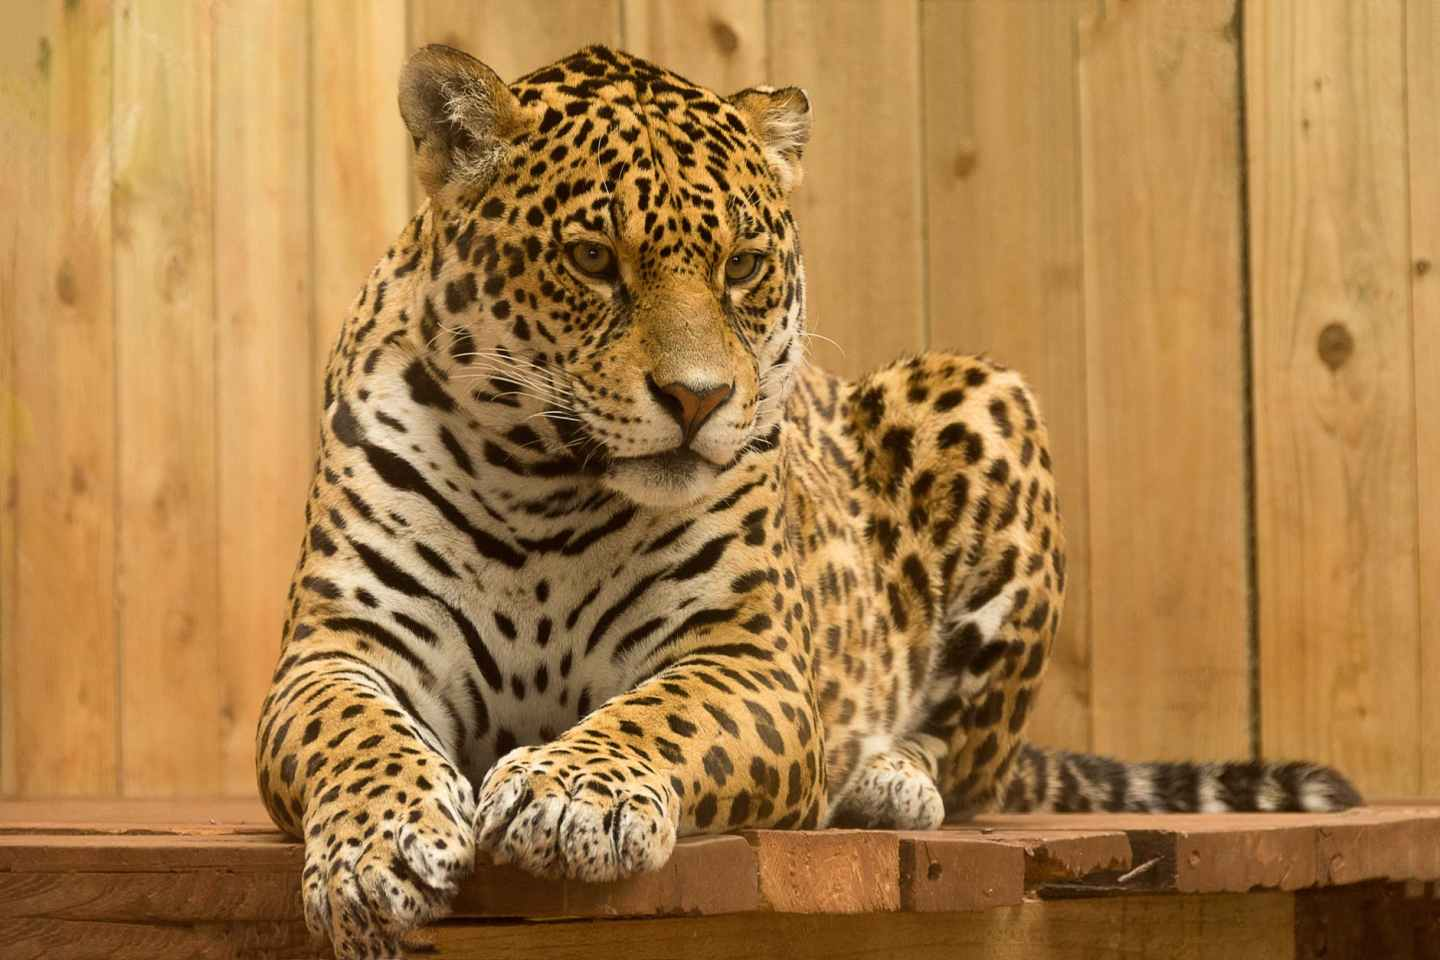 A leopard relaxing - zoos and aquariums